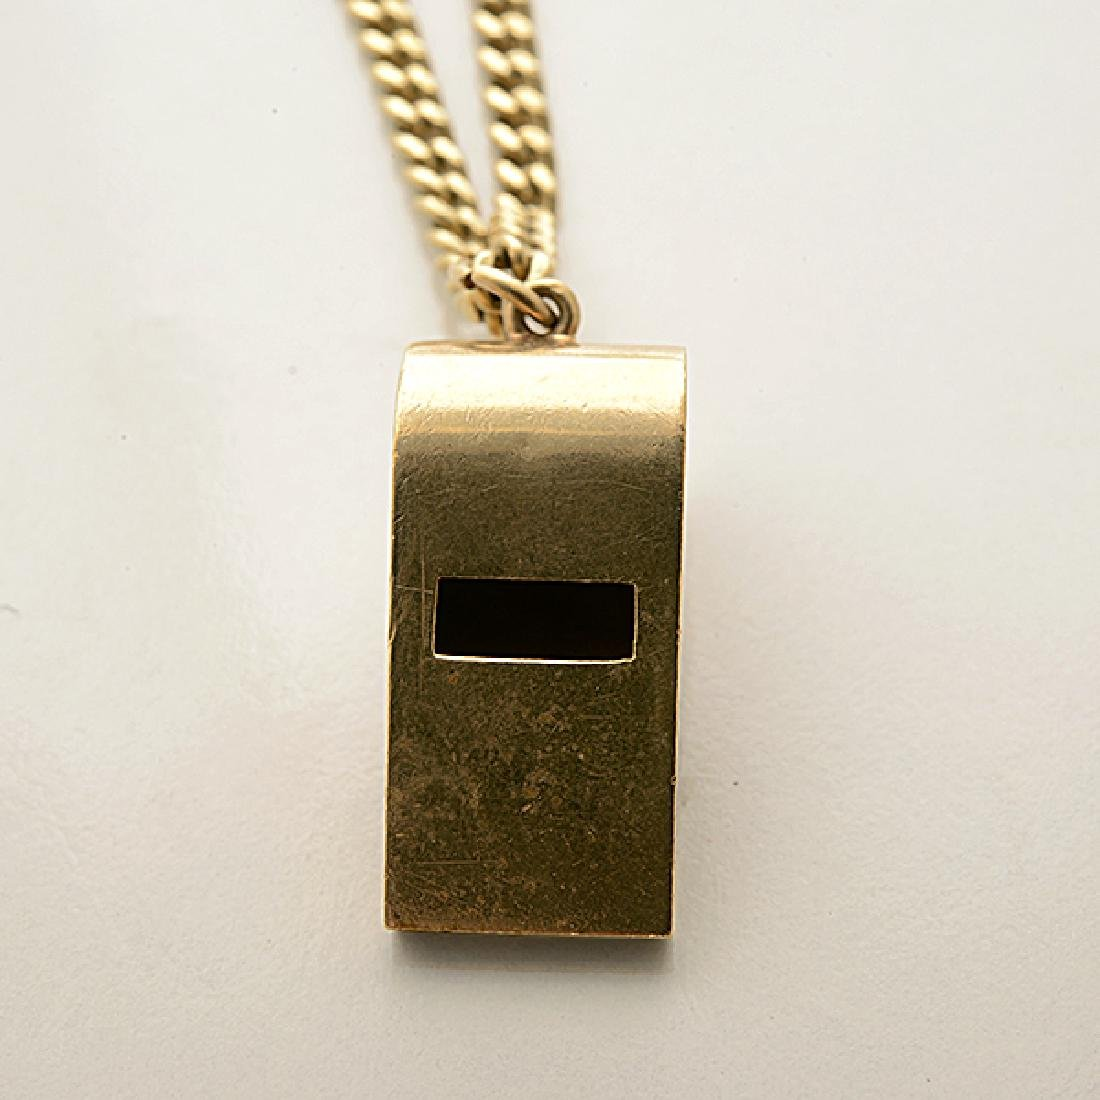 Tiffany & Co. 14k Yellow Gold Whistle Pendant Necklace. - 2